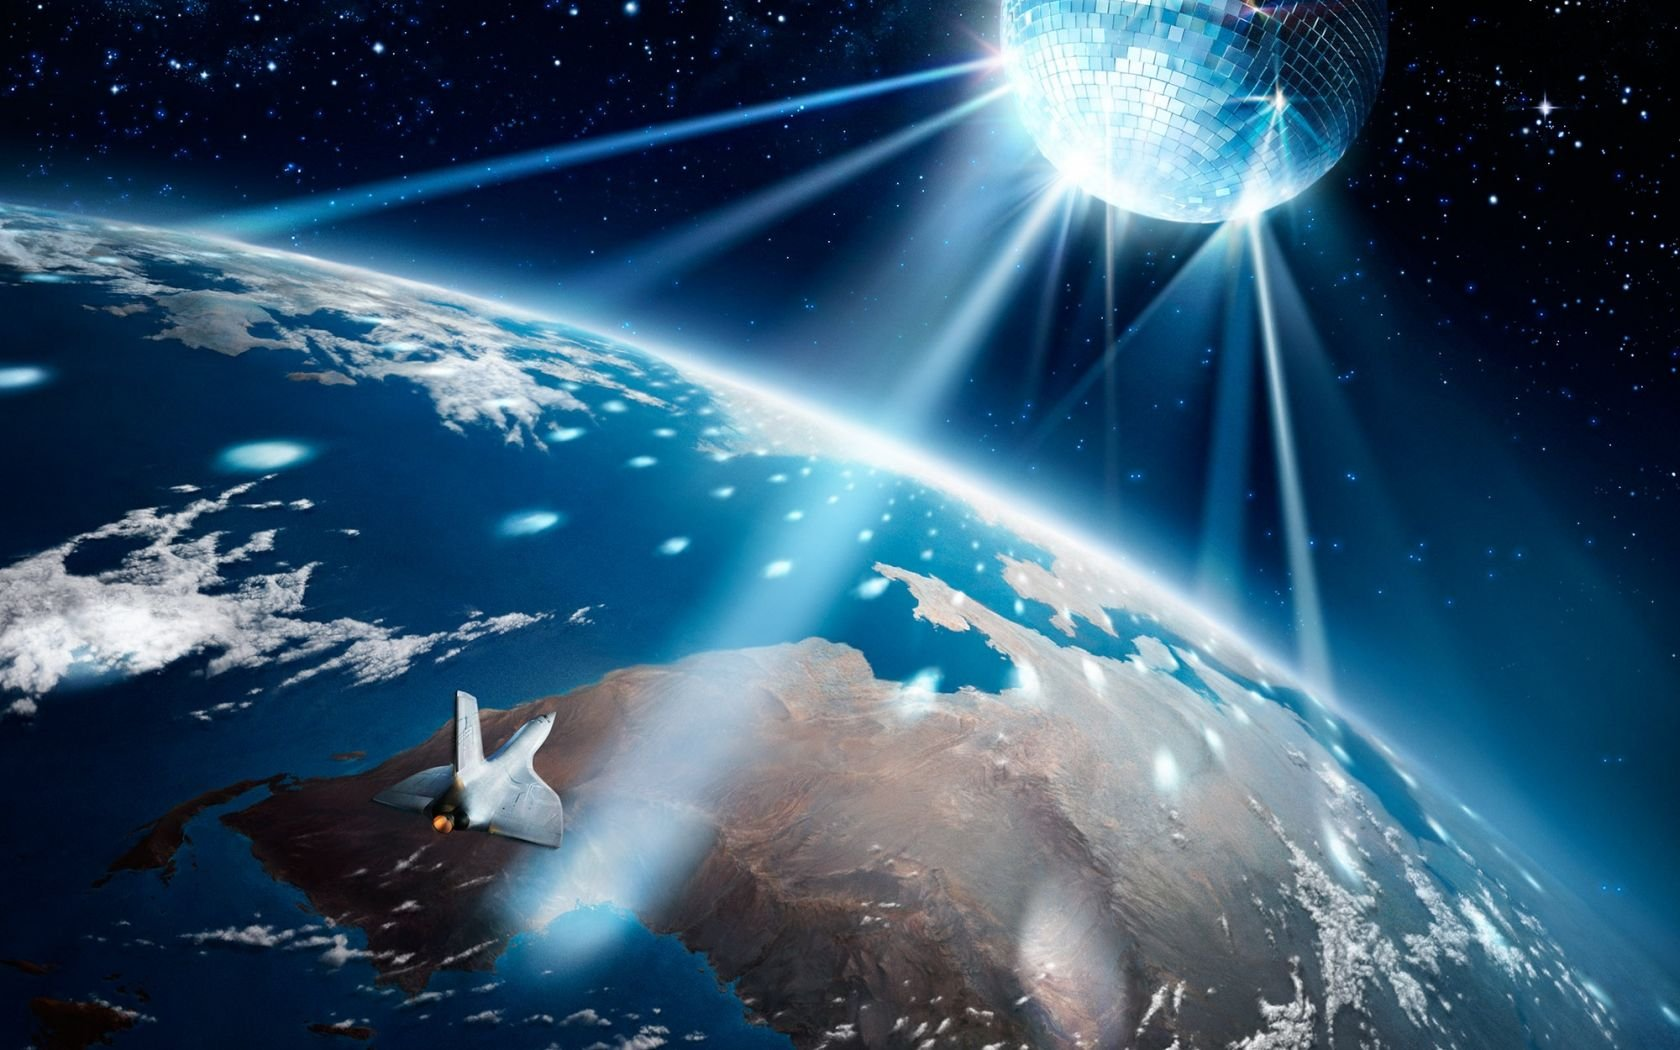 Disco Ball Lighting Earth Wallpaper 1680x1050 pixel Windows HD 1680x1050